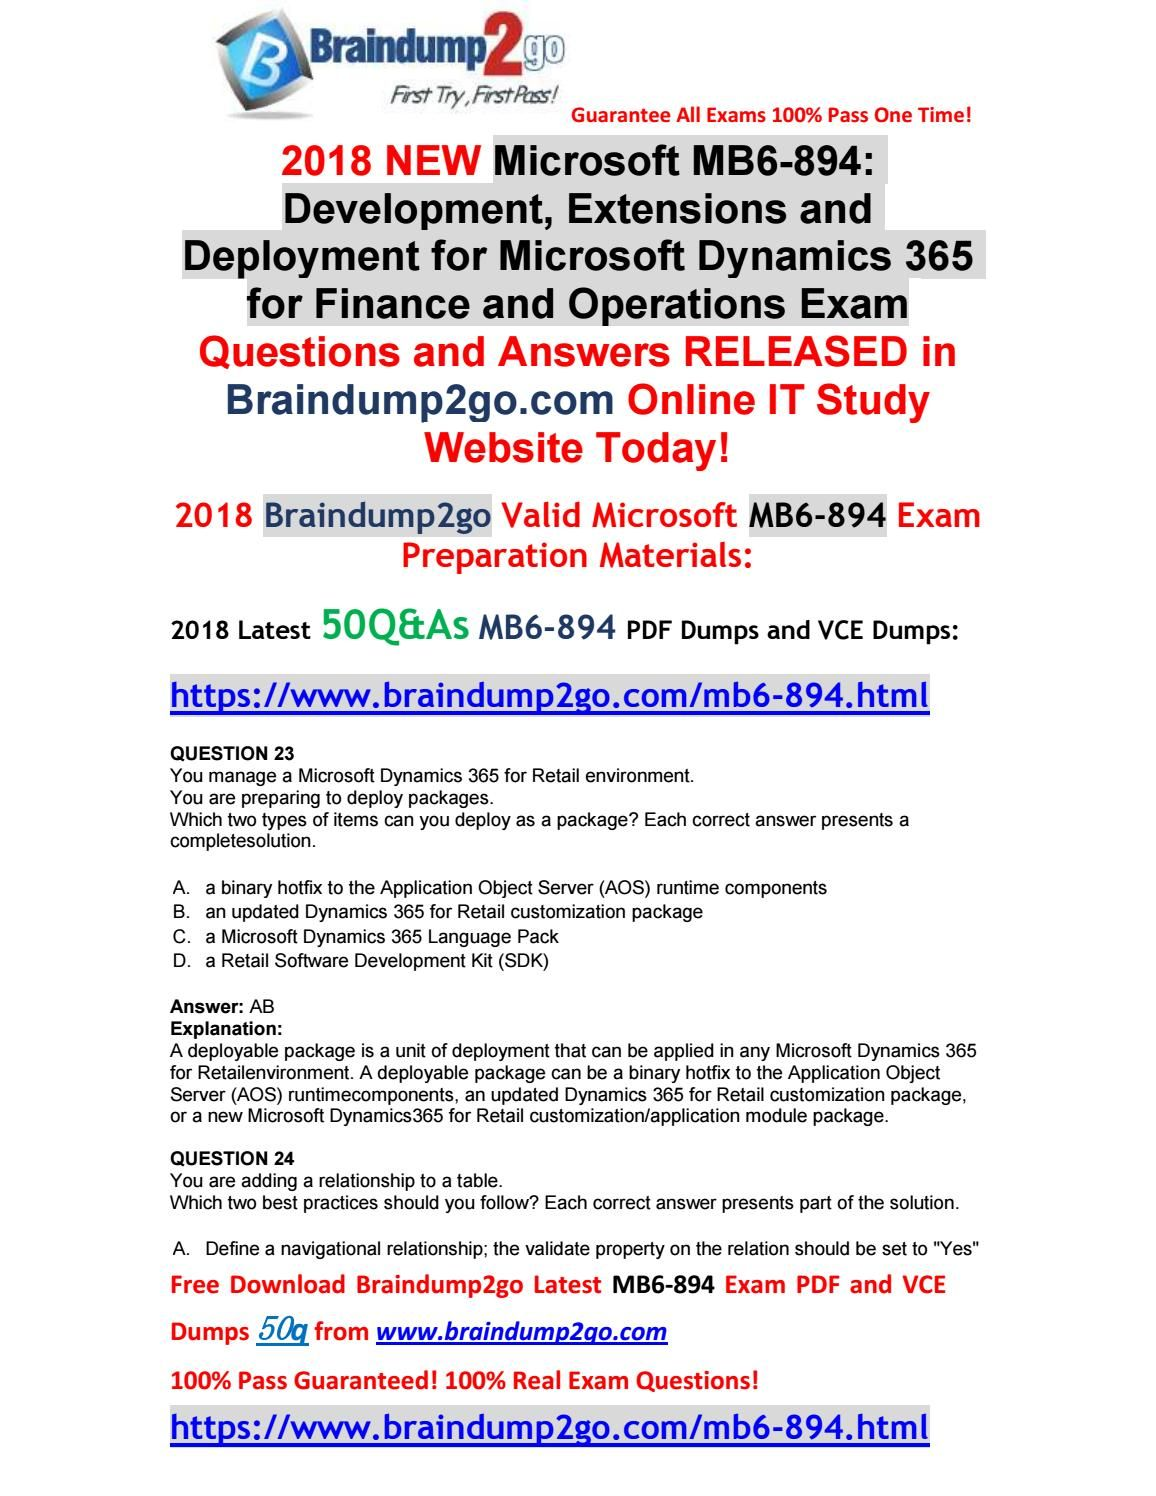 2018 new microsoft exam mb6 894 pdf and vce dumps 50qas free 2018 new microsoft exam mb6 894 pdf and vce dumps 50qas free share 23 1betcityfo Image collections